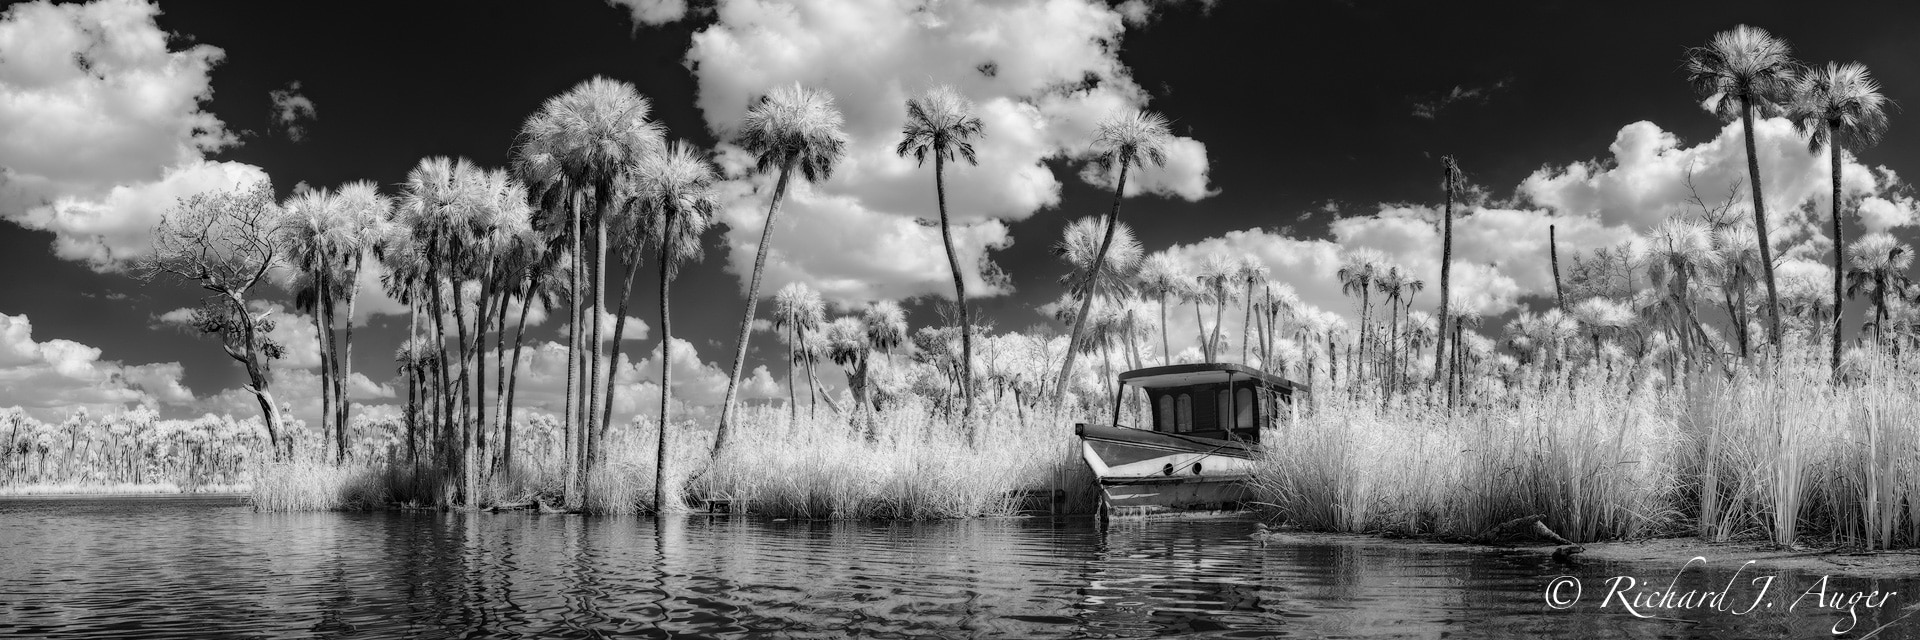 Chassahowitzka river, Florida, Chaz, boat, swamp, palm trees, coastal, storm, water, landscape, photographer, panorama